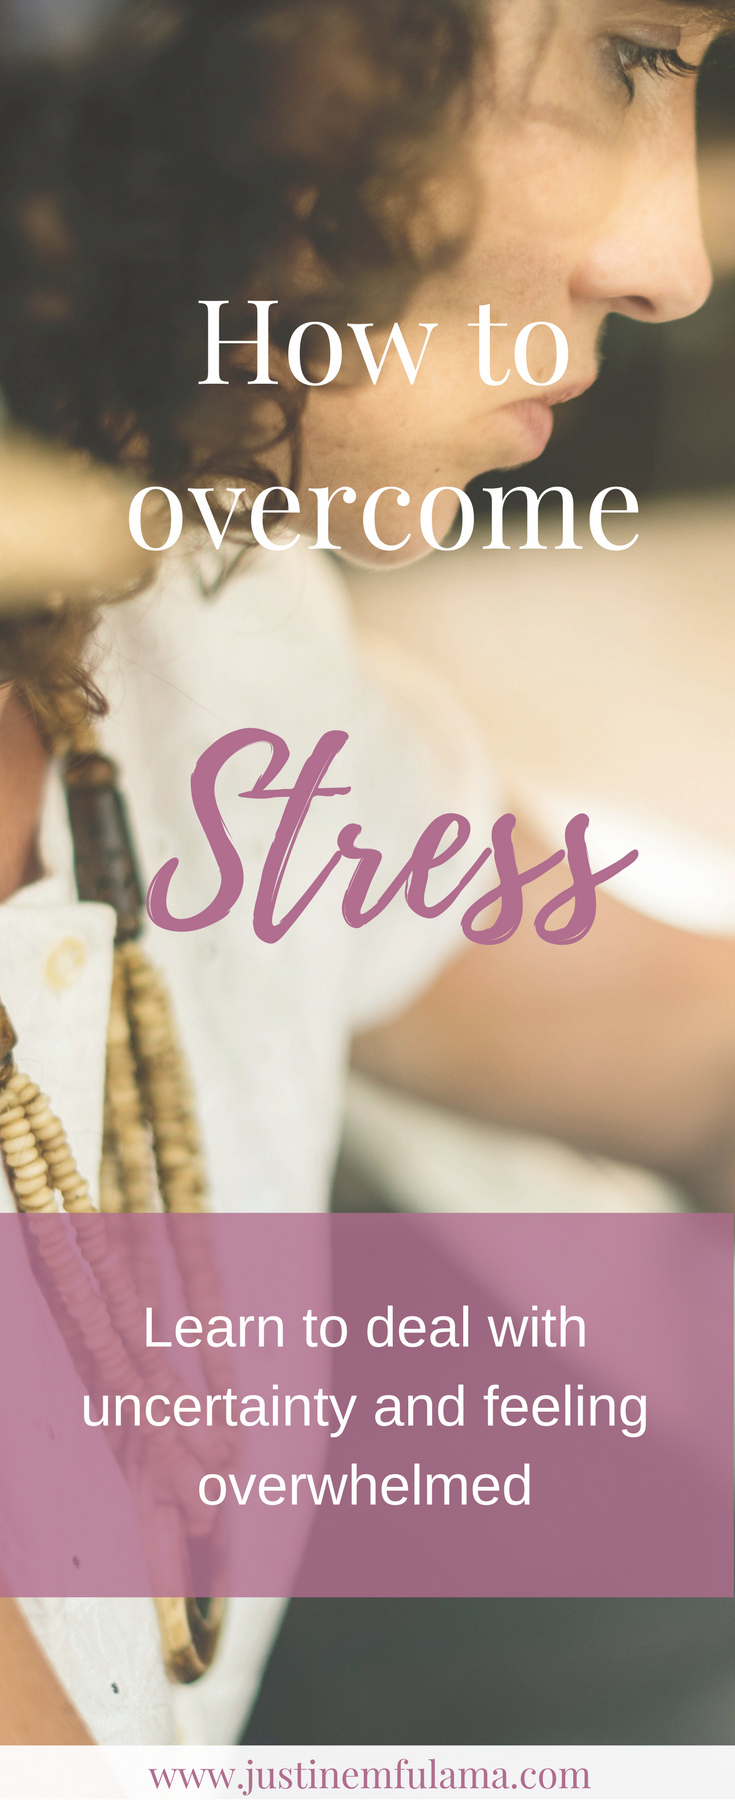 How to overcome stress - Learn to deal with uncertainy and feeling overwhelmed